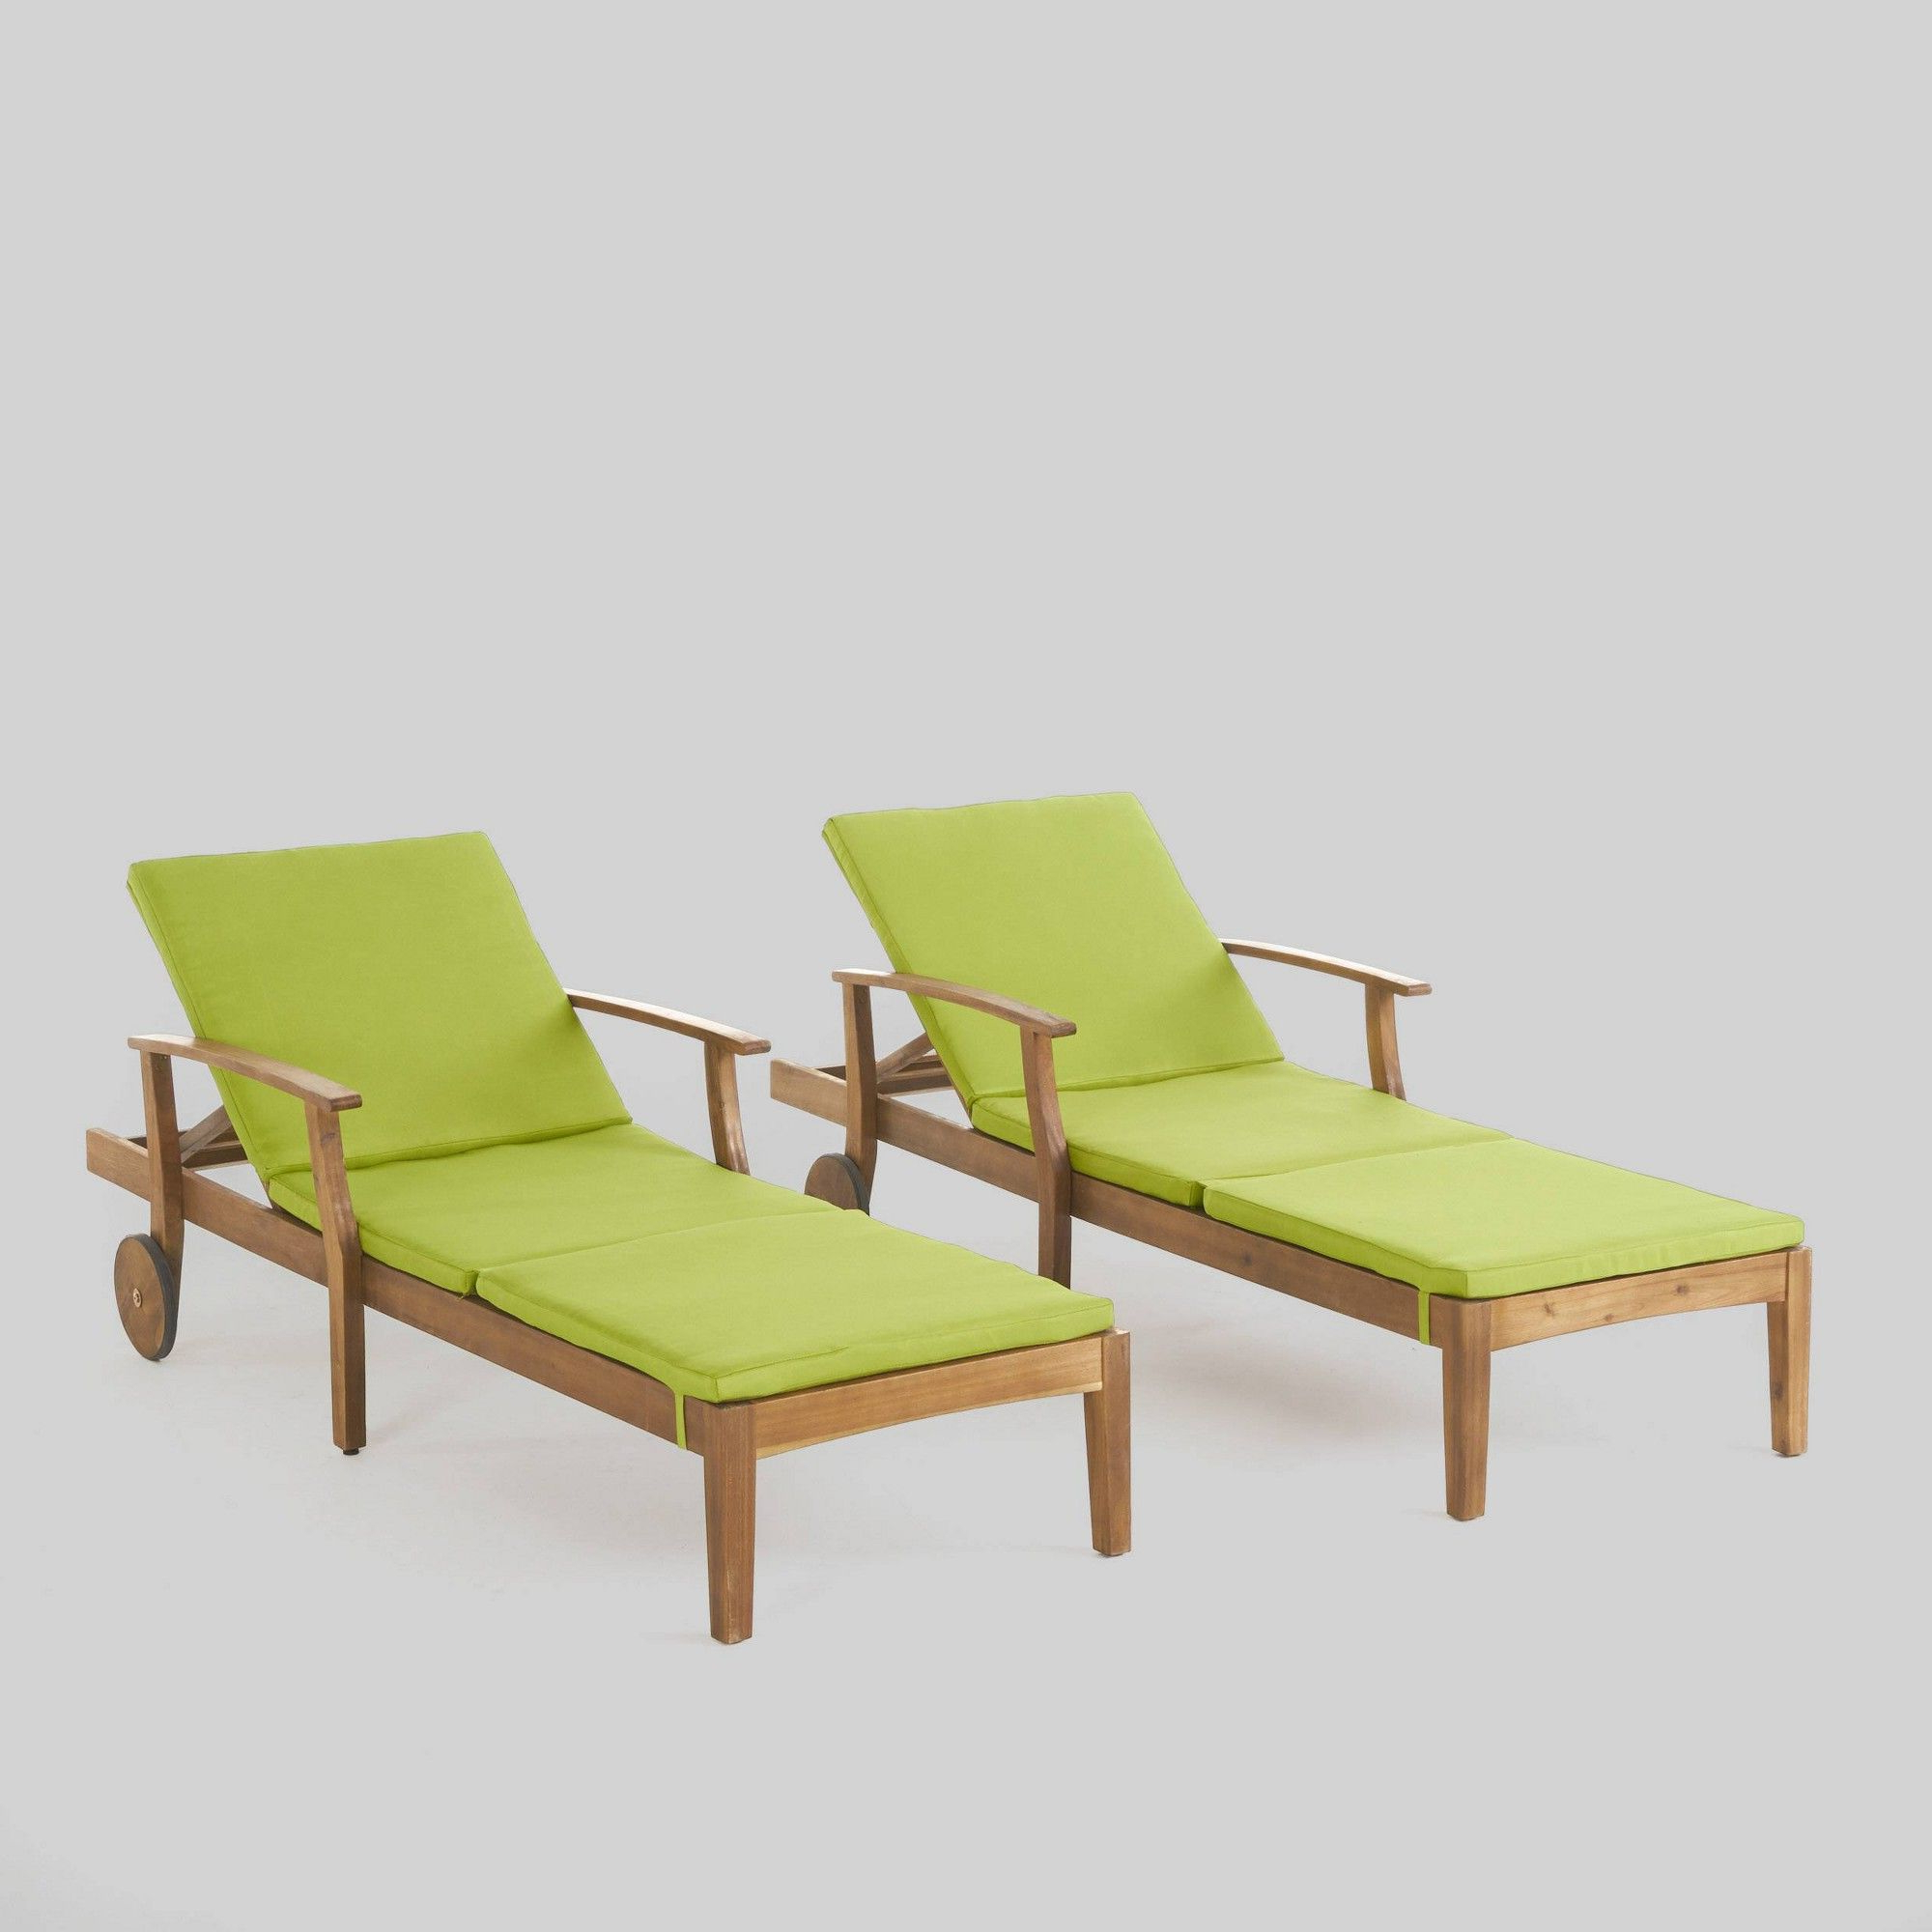 Most Popular Perla 2Pk Acacia Wood Patio Chaise Lounge – Teak/green For Perla Outdoor Acacia Wood Chaise Lounges (View 10 of 25)